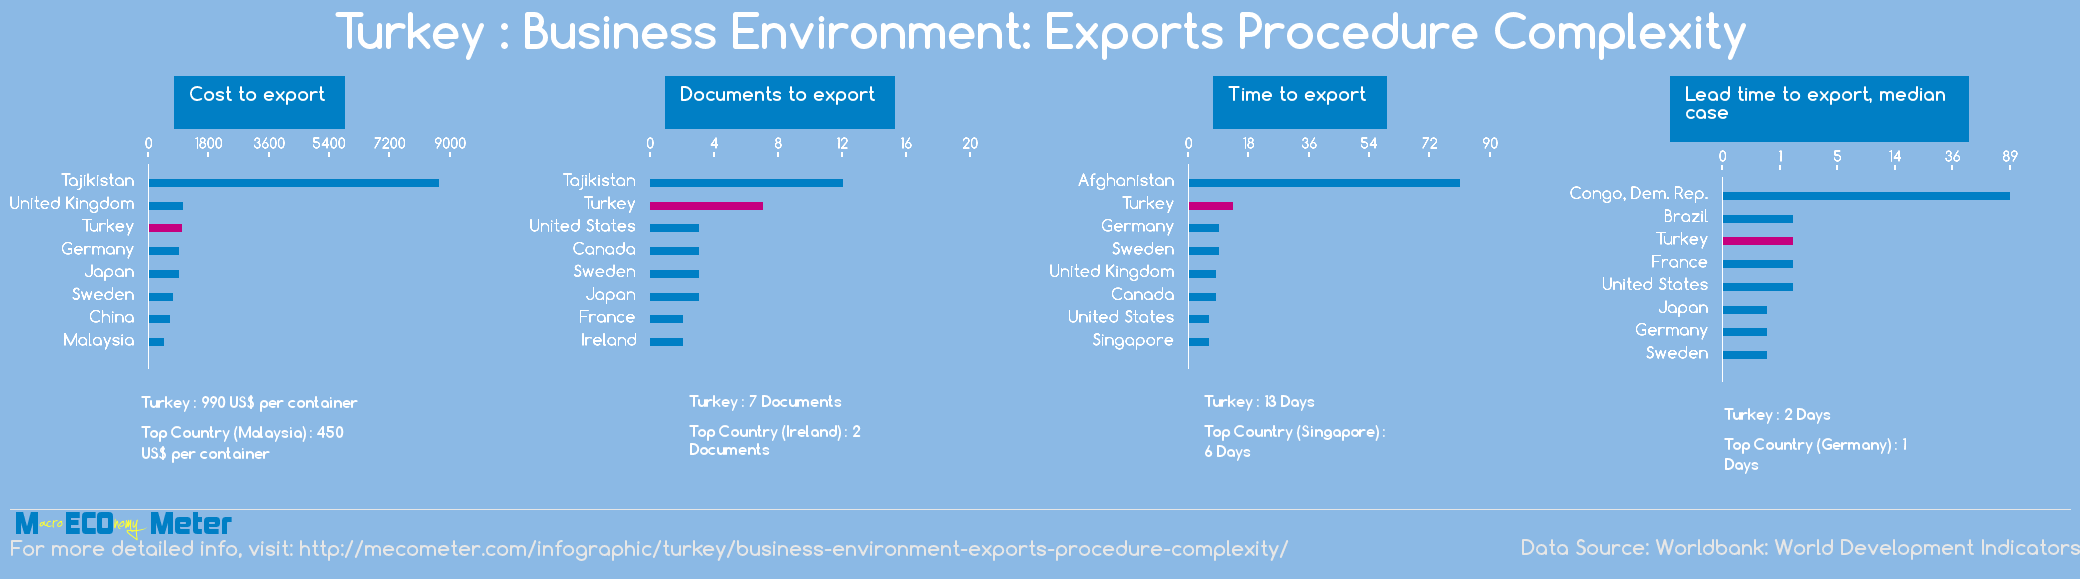 Turkey : Business Environment: Exports Procedure Complexity